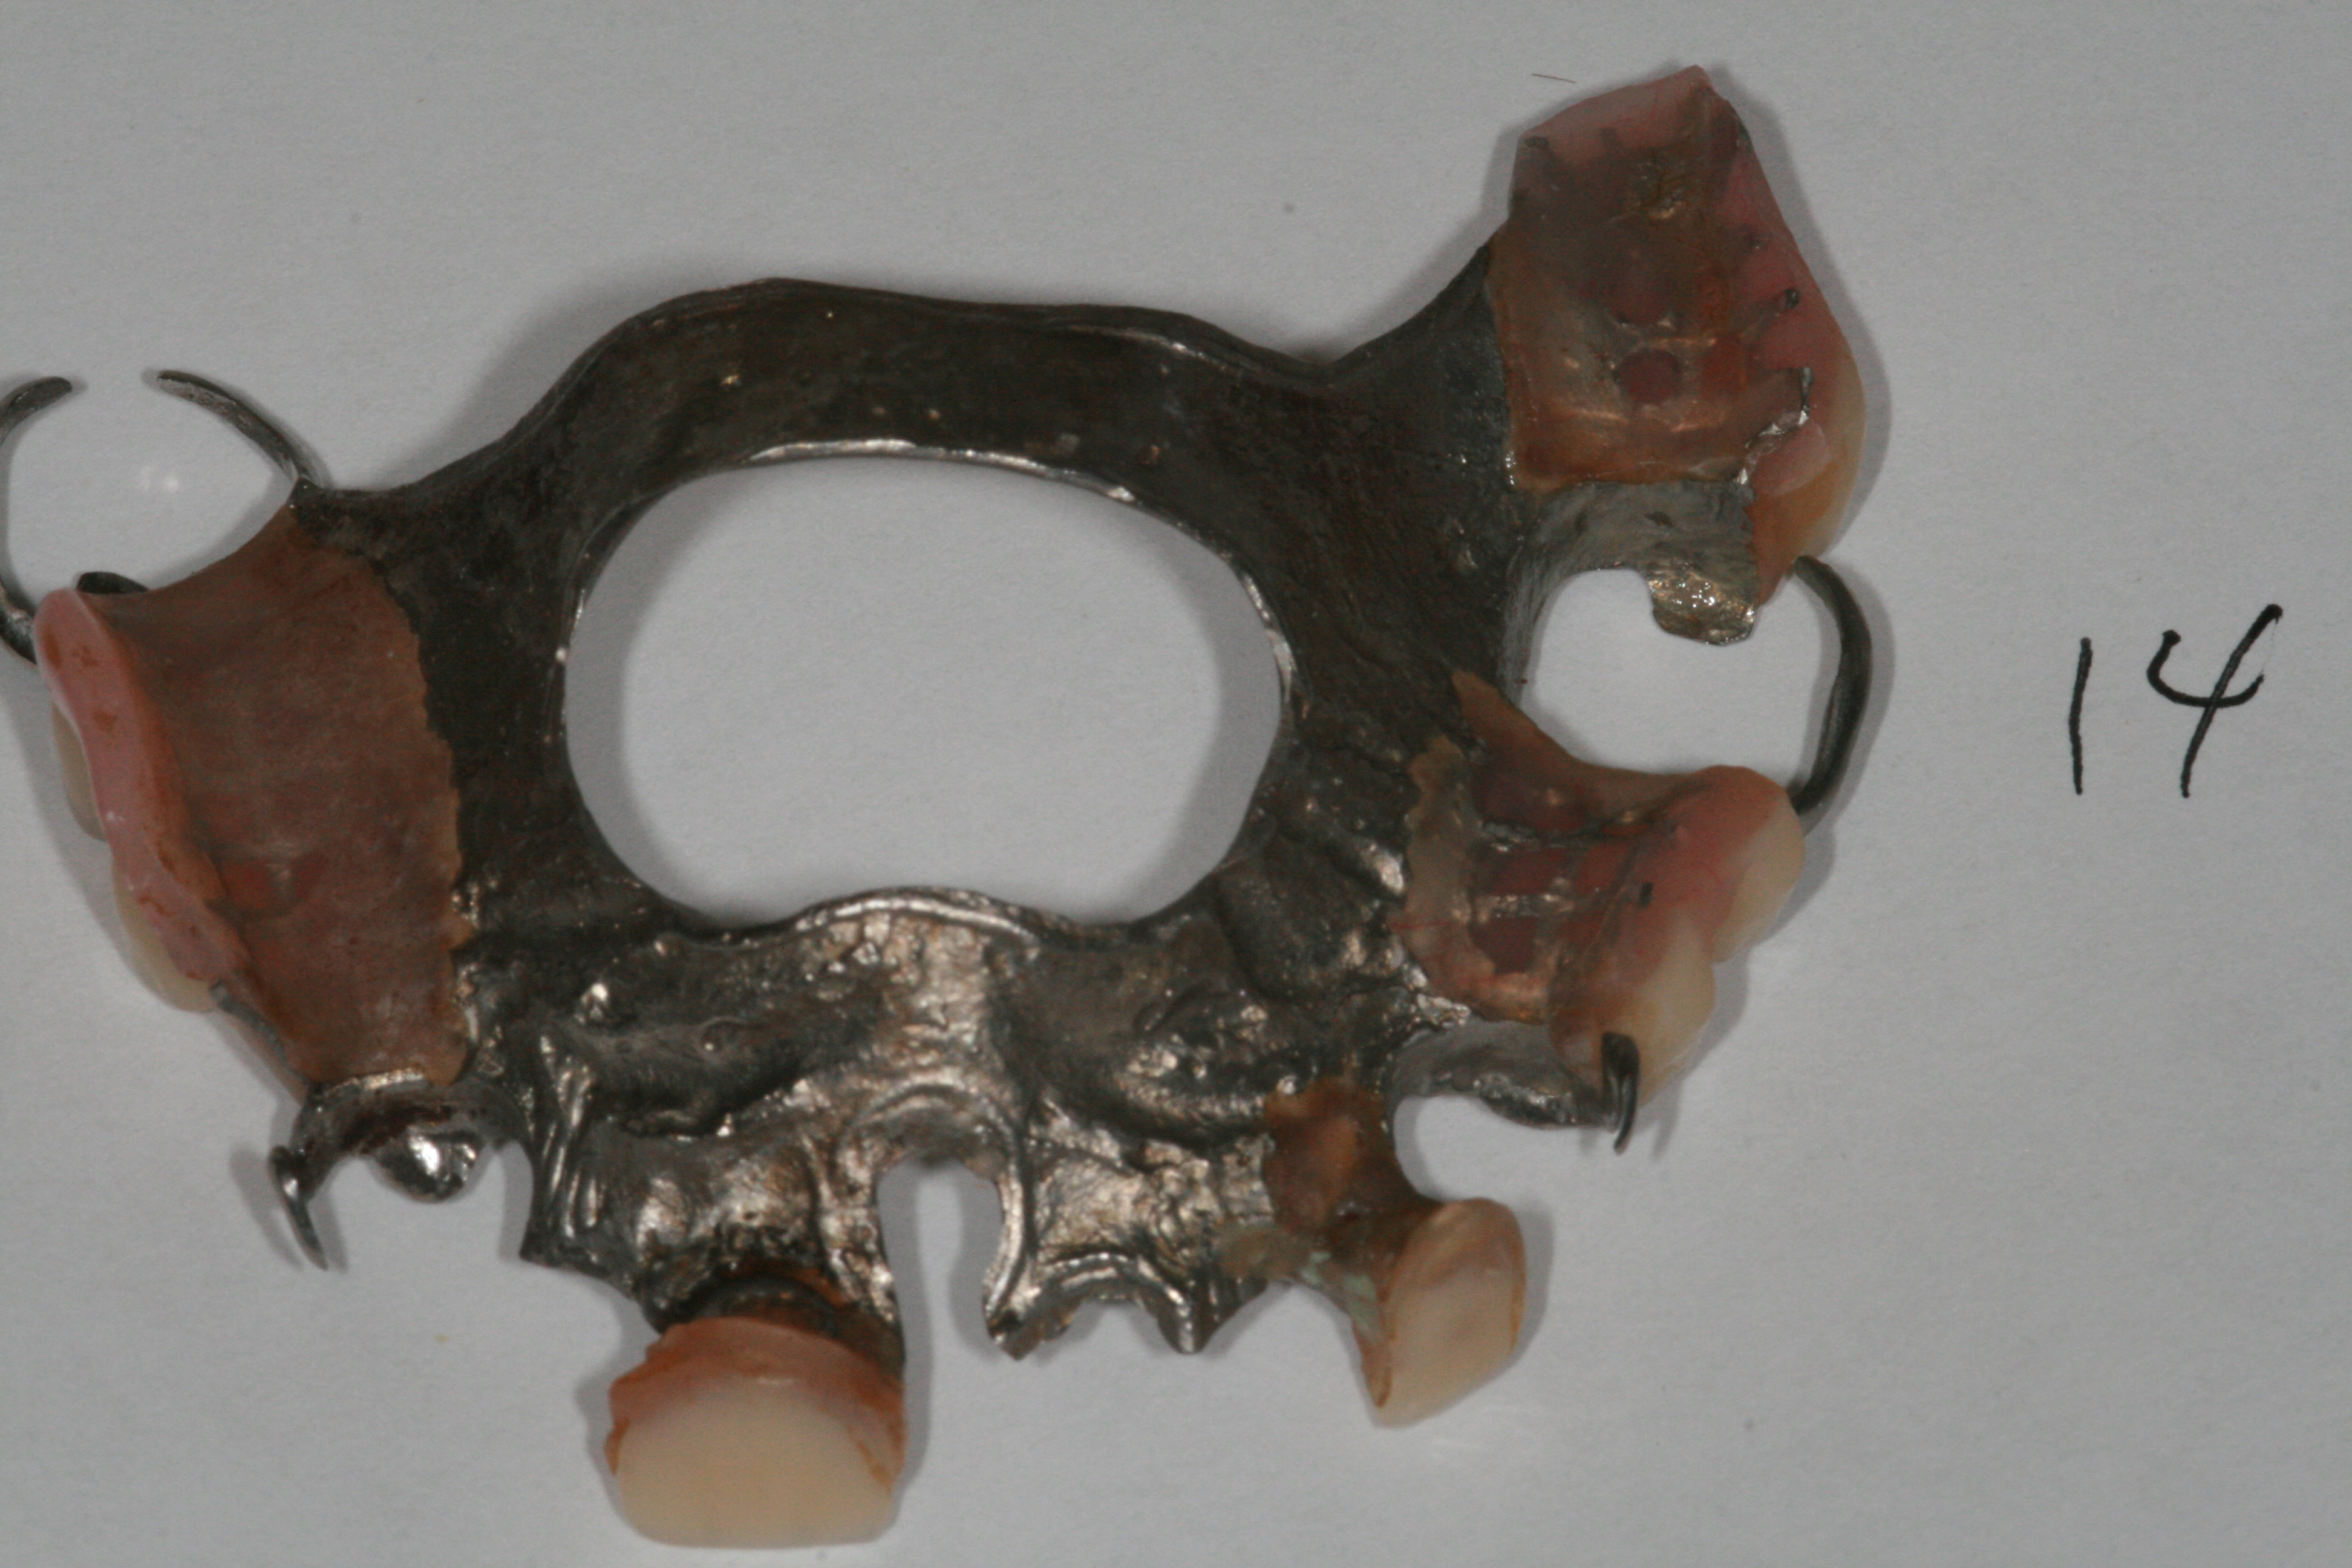 Partial denture at Advanced Dentistry Implant Center